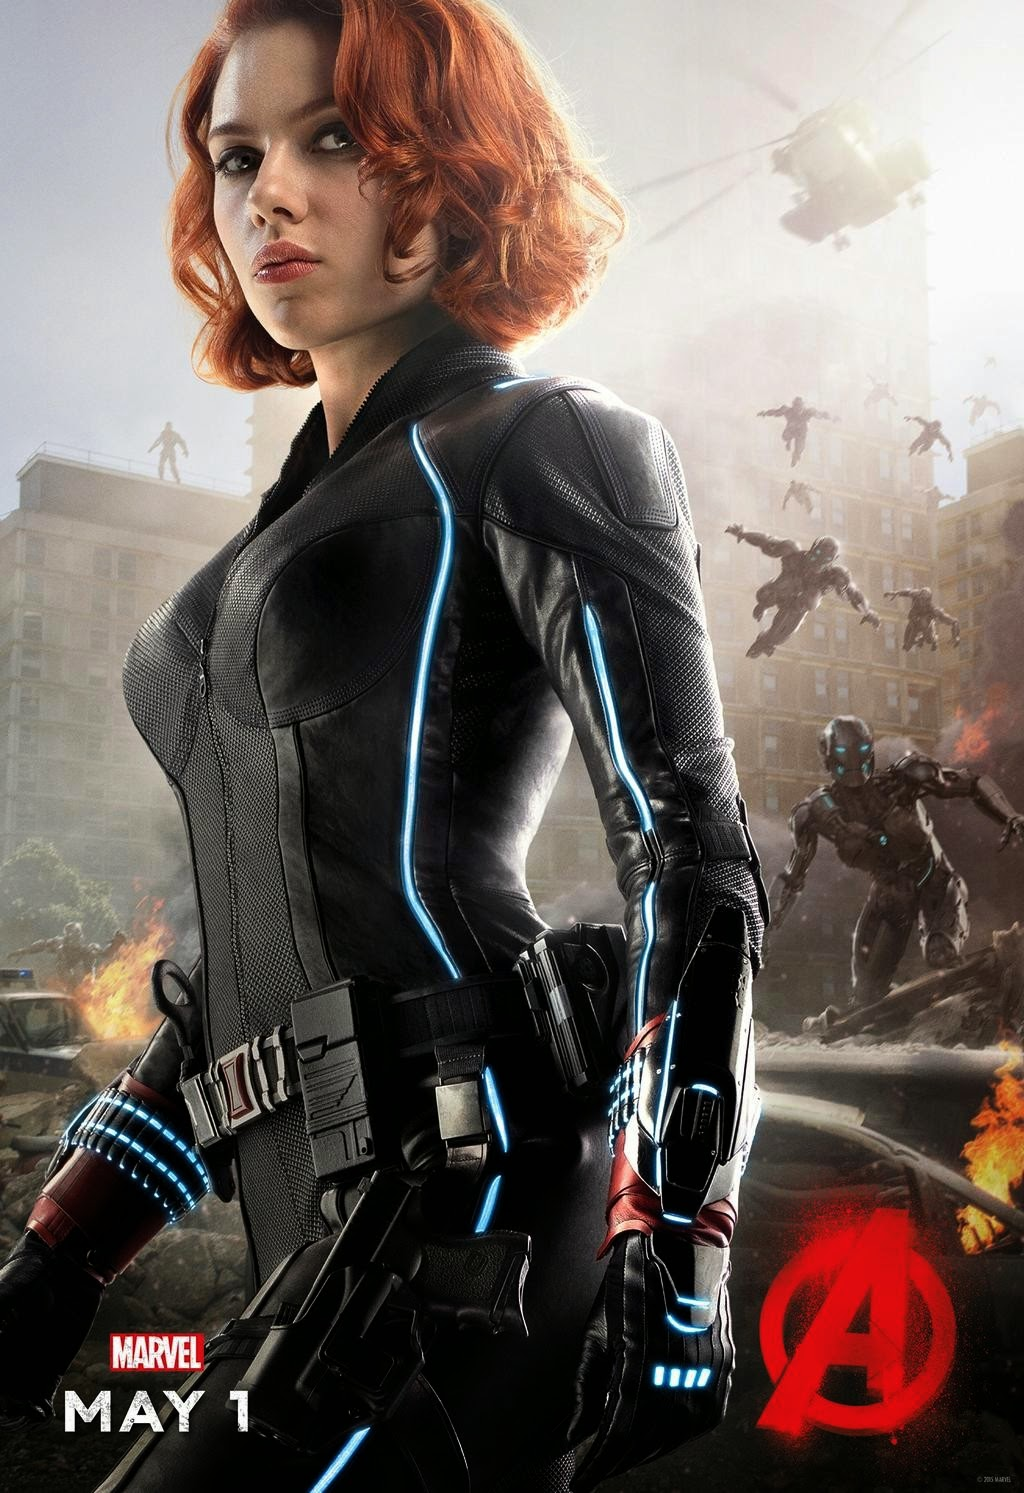 Marvel's Avengers Age of Ultron Character Movie Poster Set - Scarlett Johansson as Black Widow